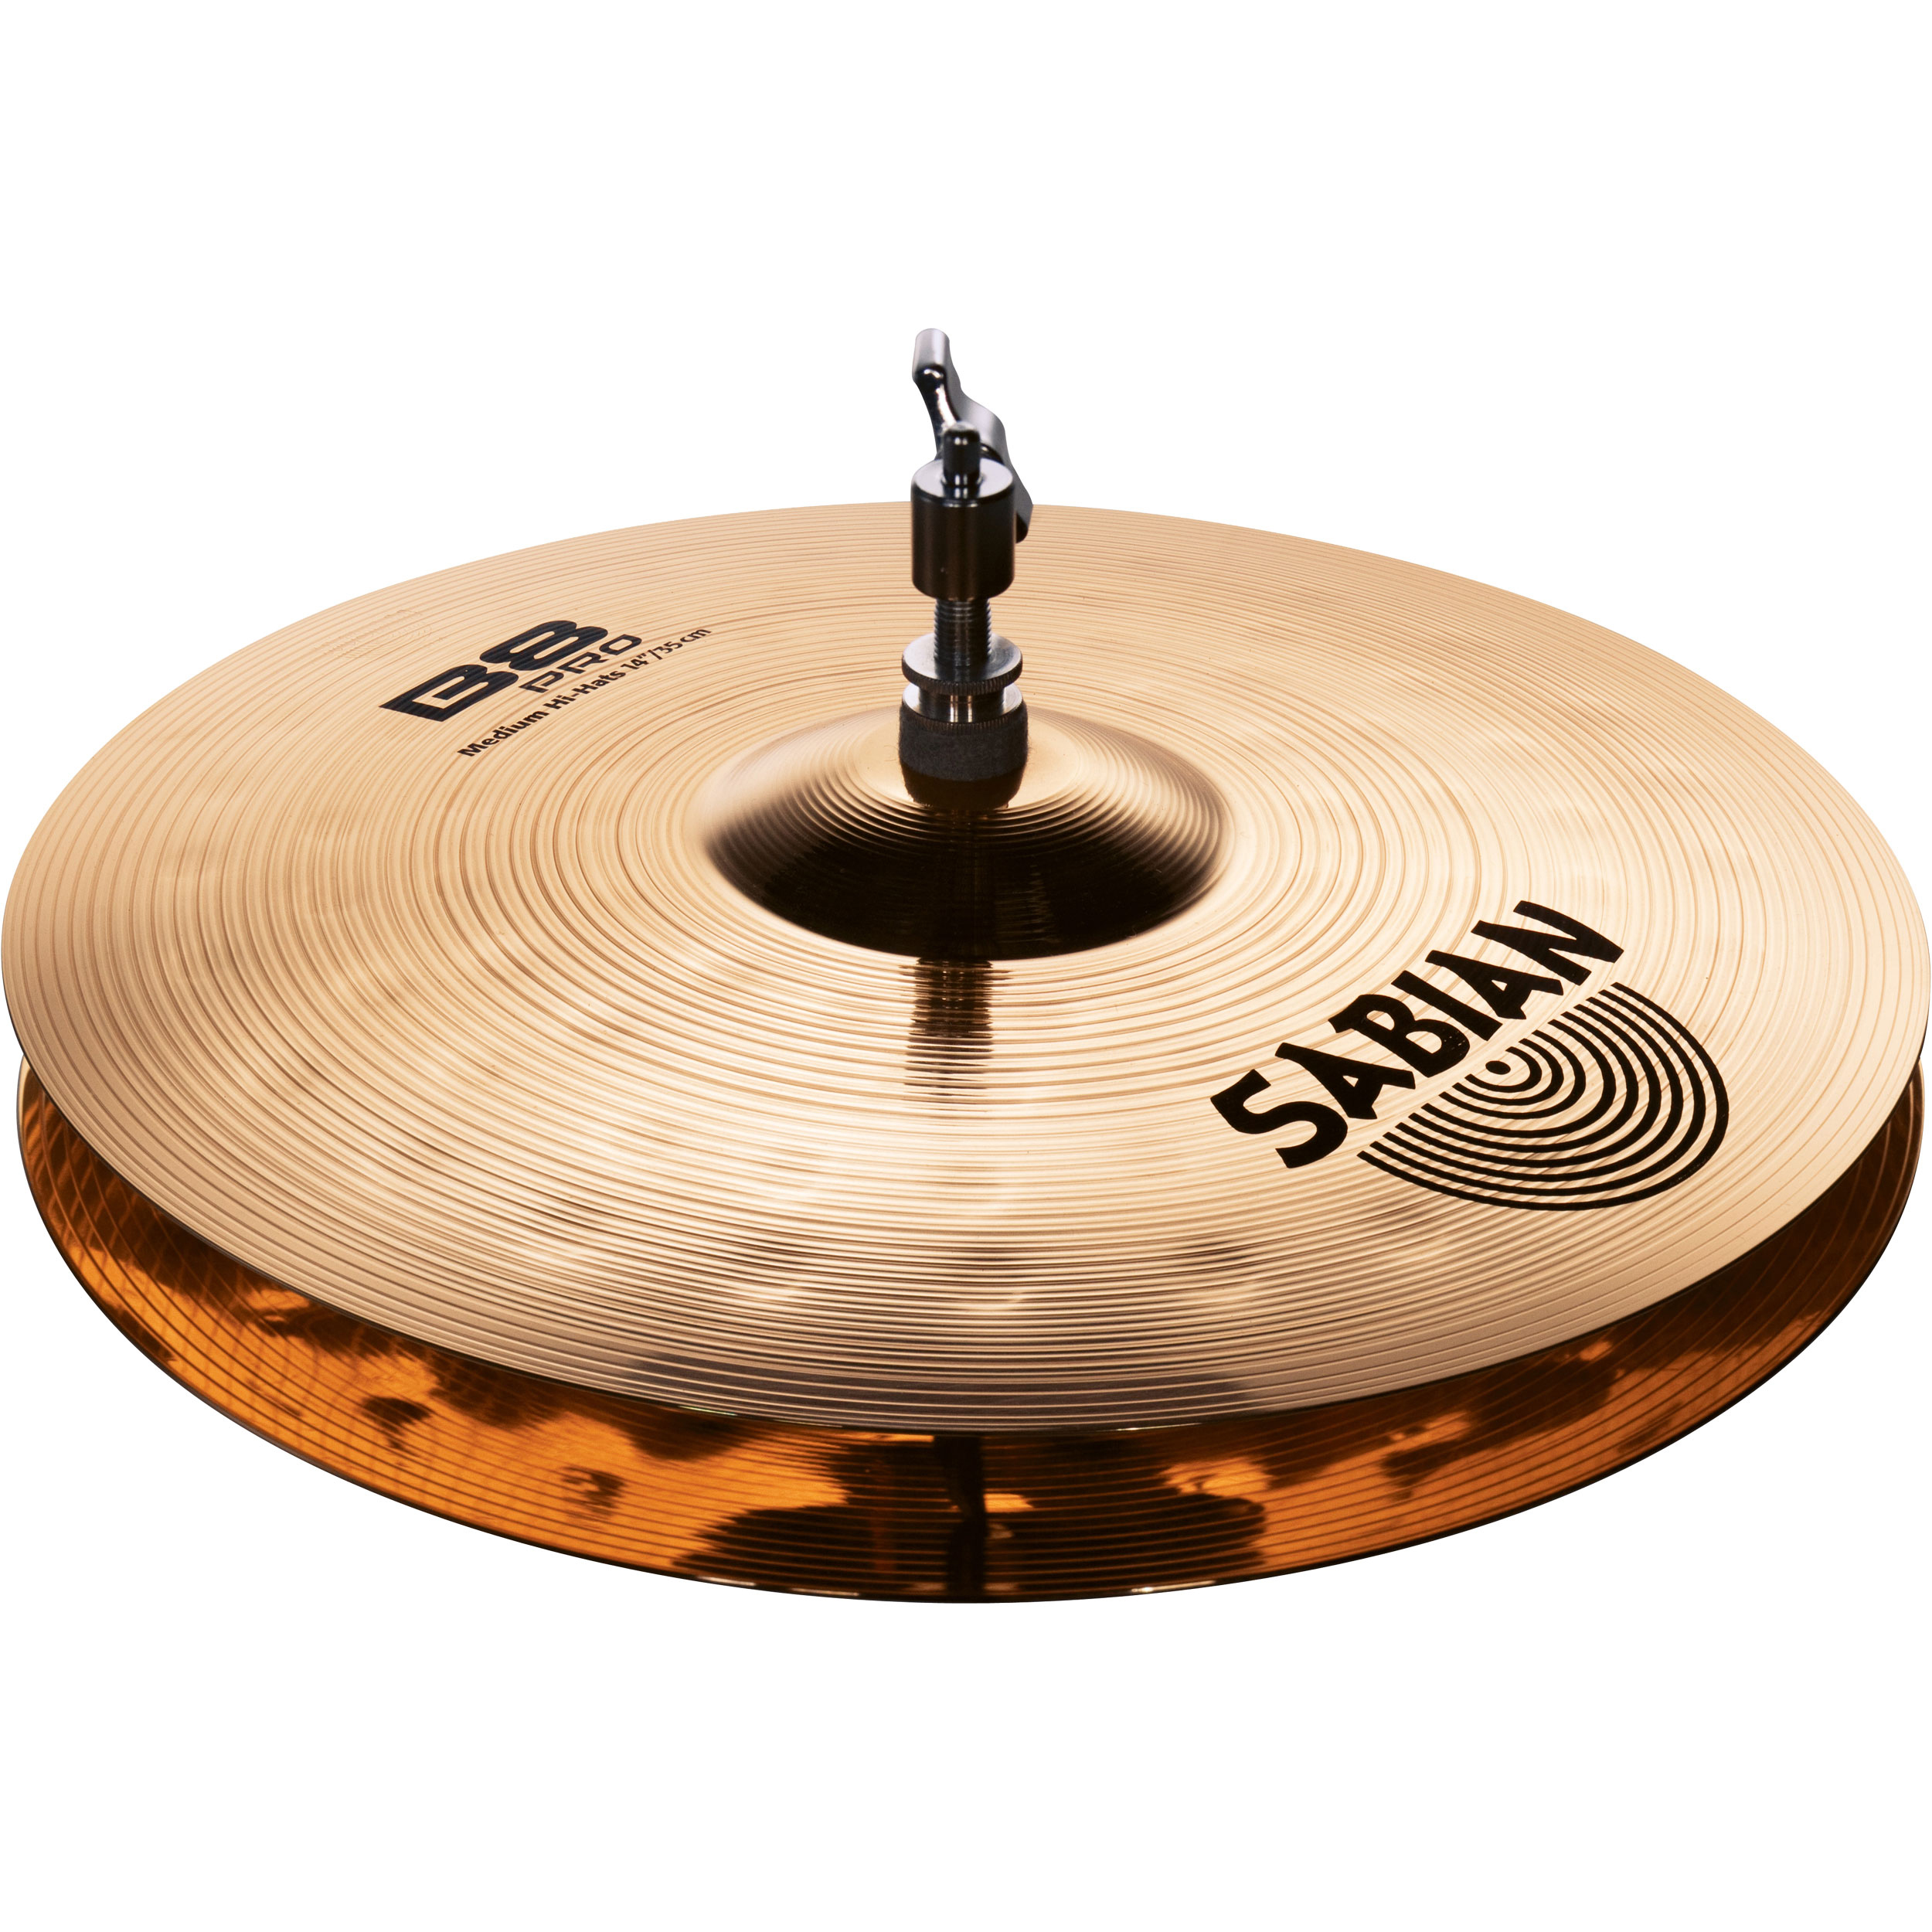 sabian 14 b8 pro medium hi hat cymbals with brilliant finish 31402b. Black Bedroom Furniture Sets. Home Design Ideas